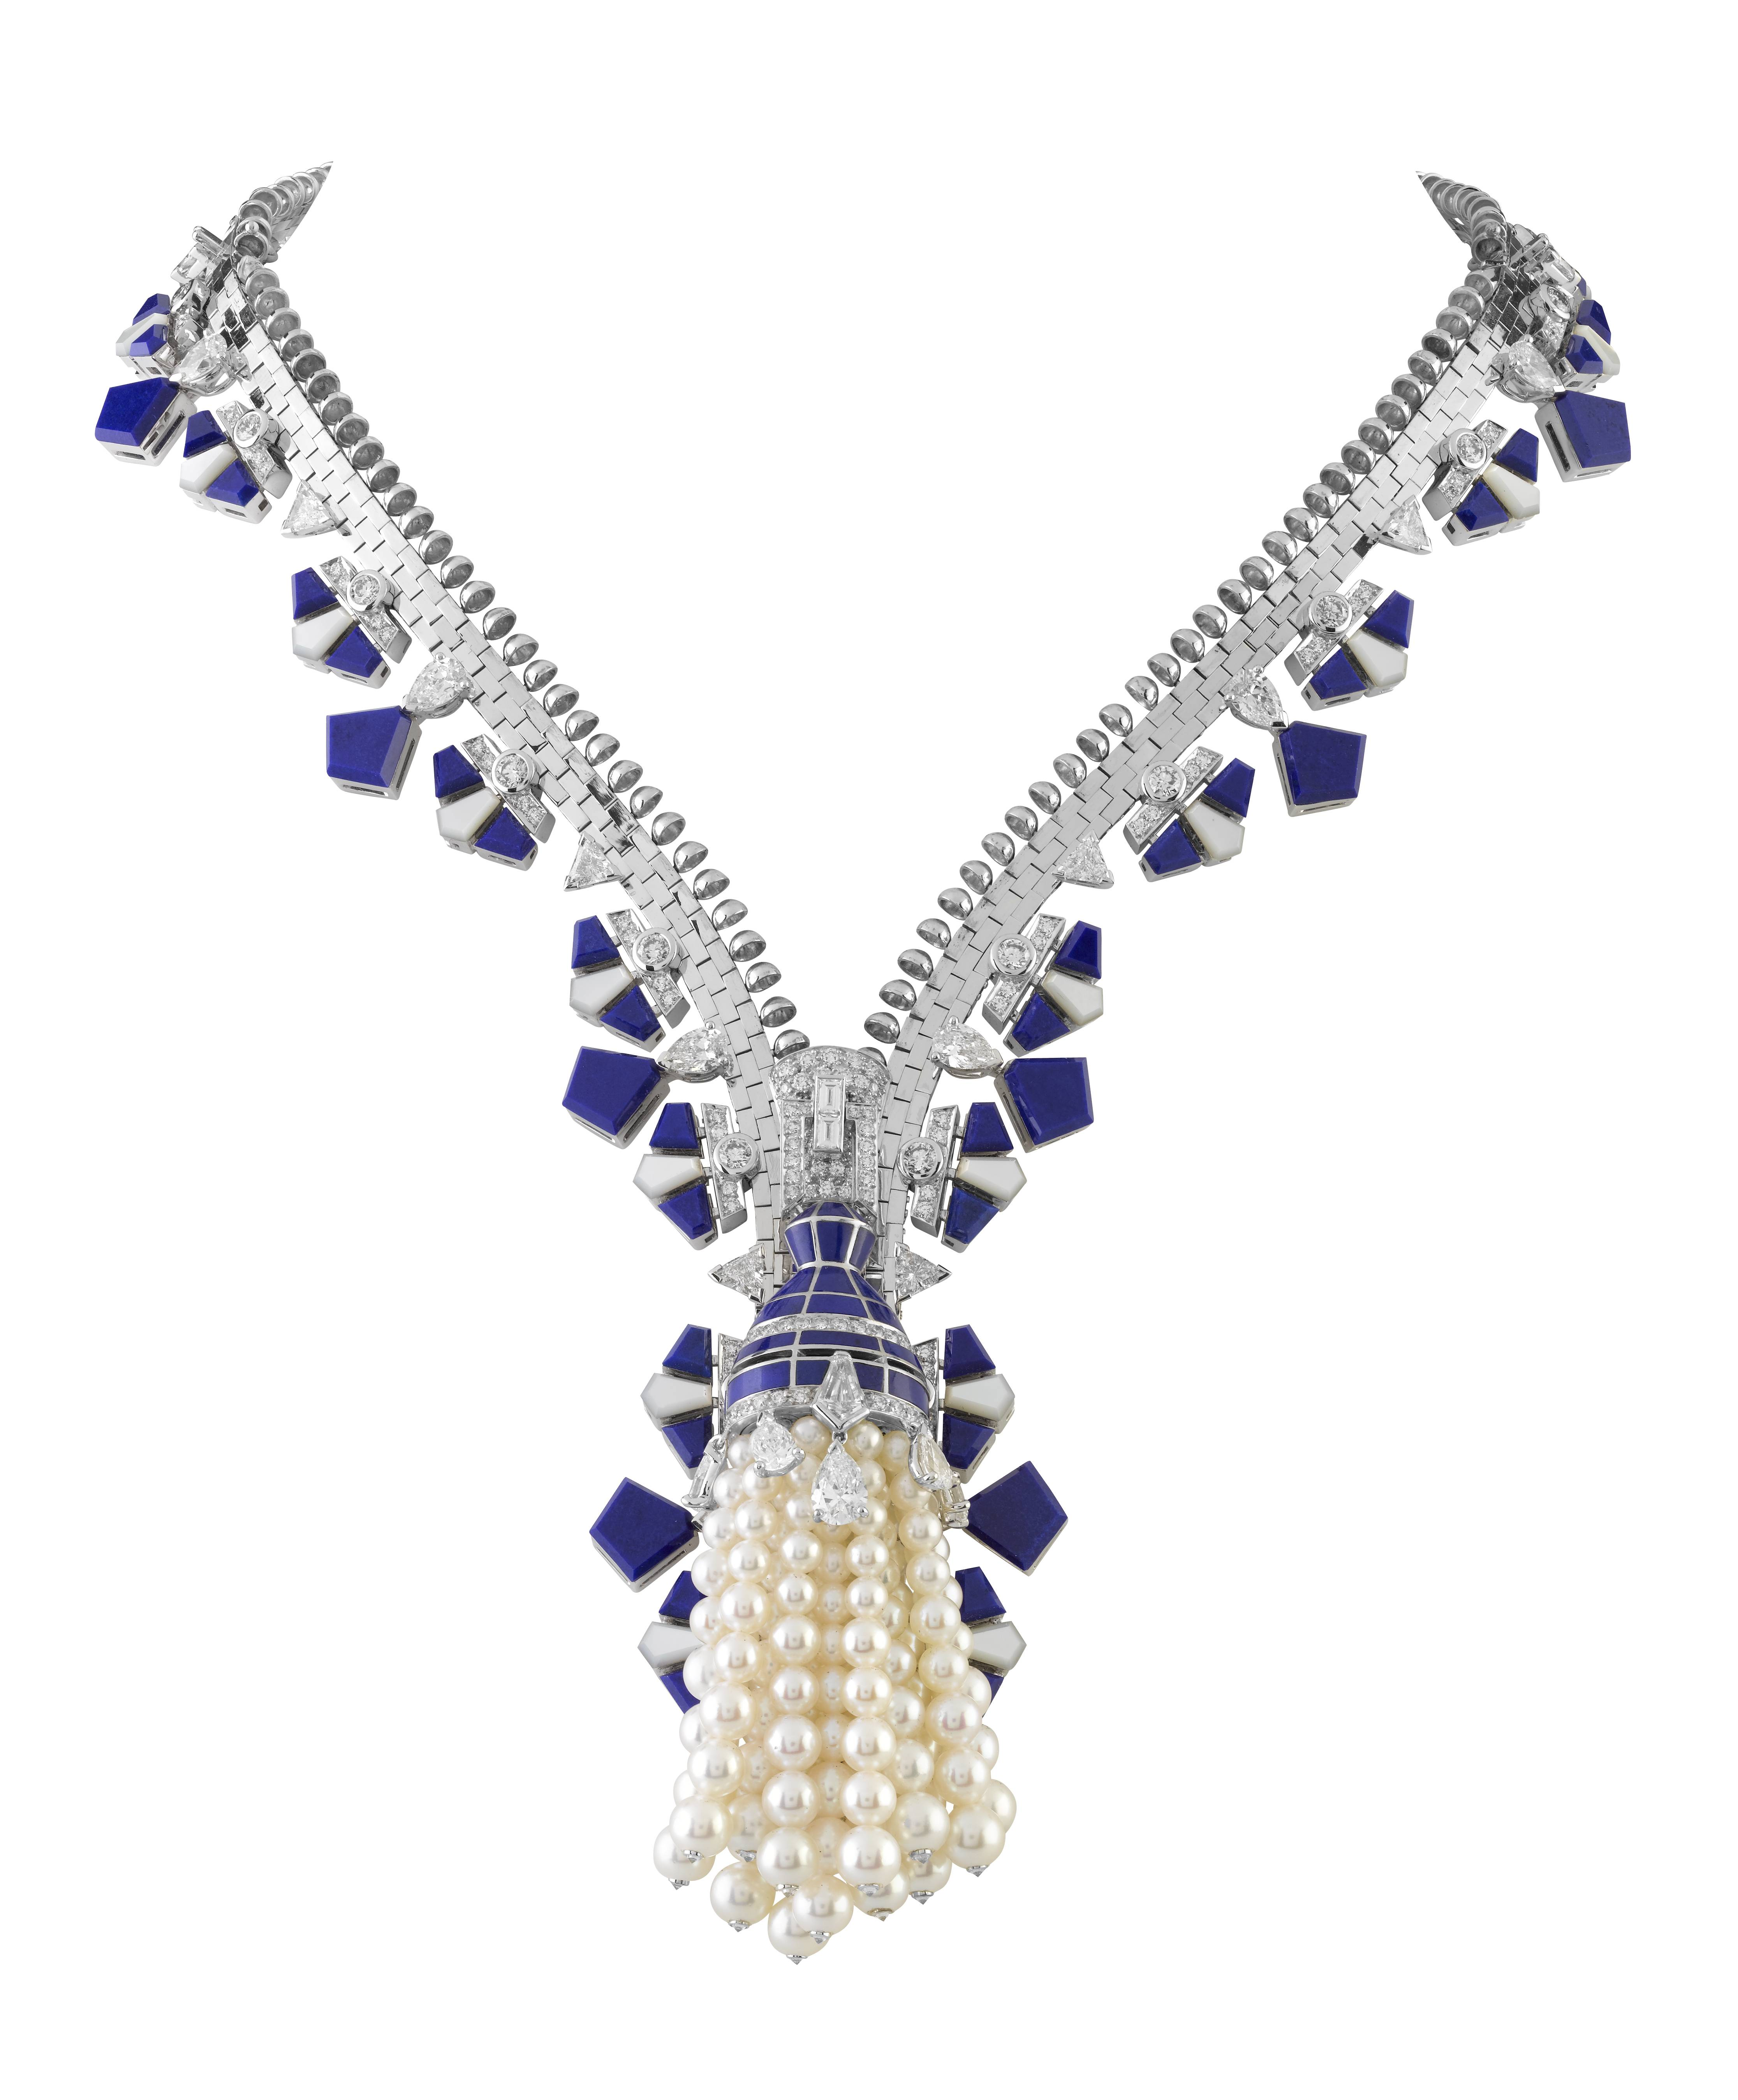 Zip It: Van Cleef & Arpels Births New Additions to the Zip Necklace Family During Haute Couture in Paris